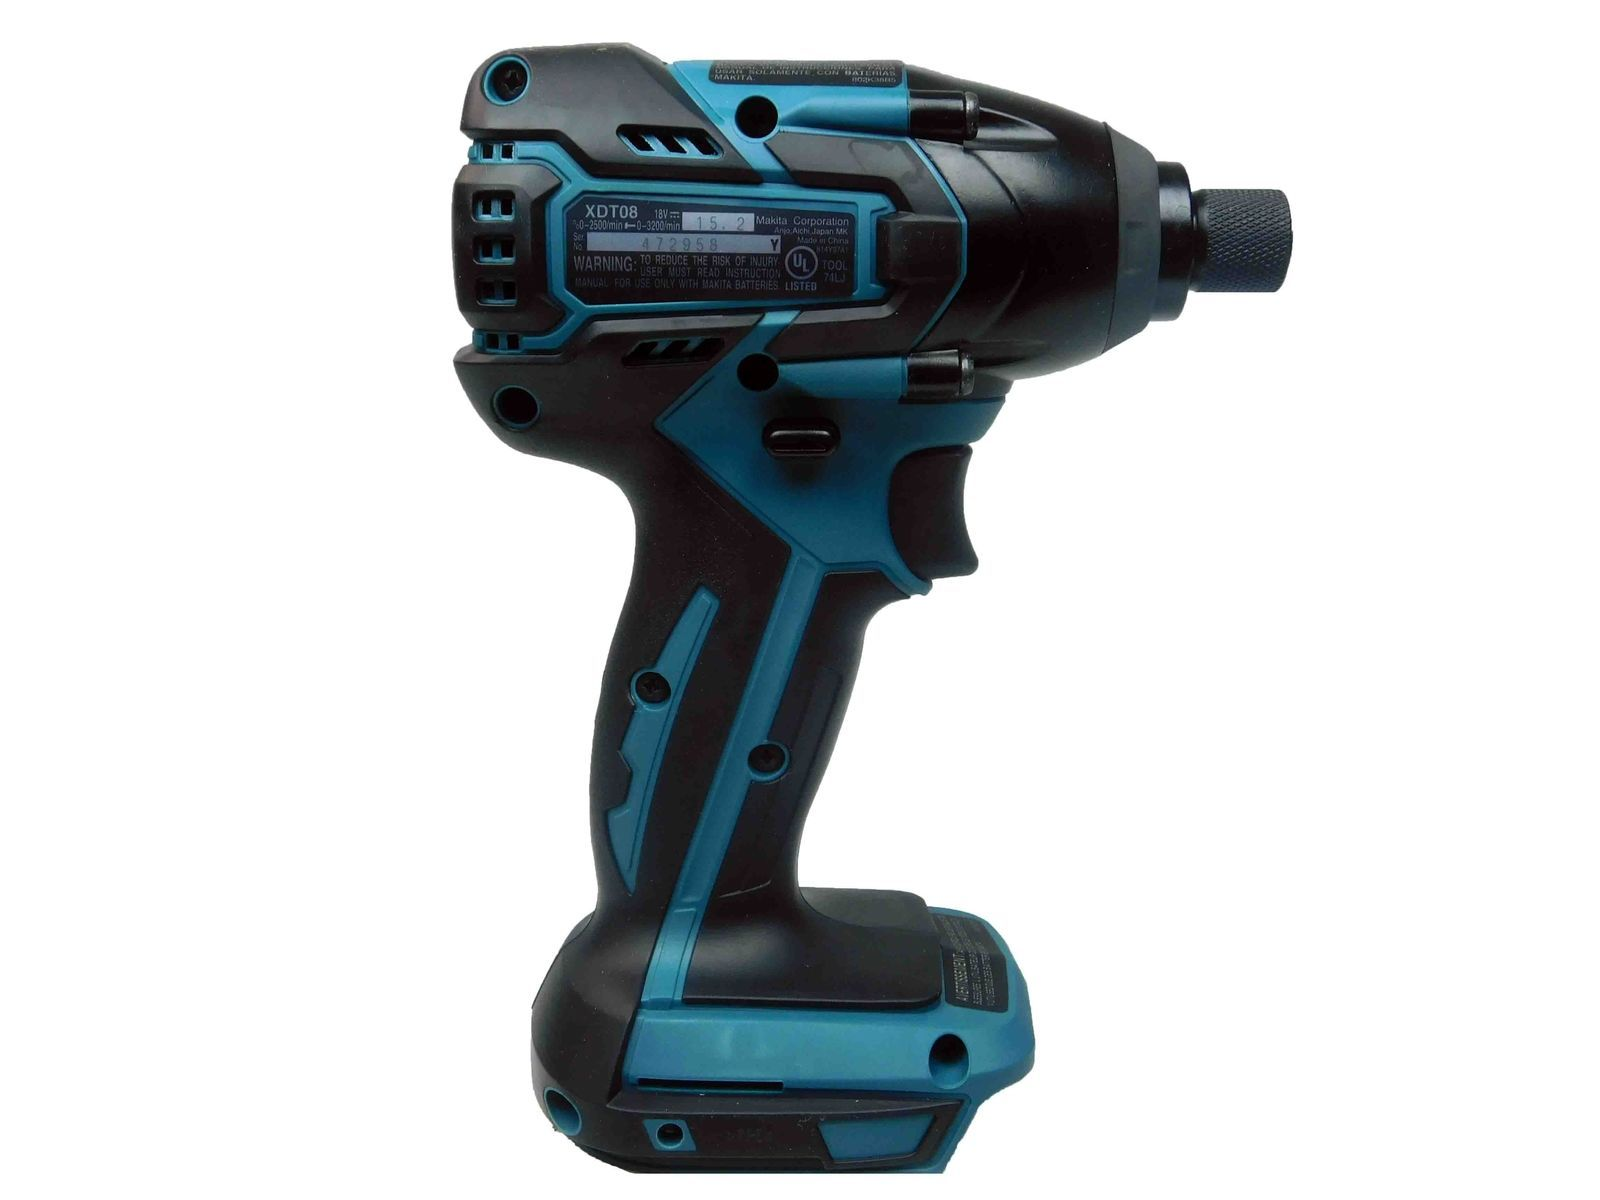 Makita-18V-XDT08-LXT-Lithium-Ion-Brushless-1-4-in.-Cordless-Impact-Driver-image-3